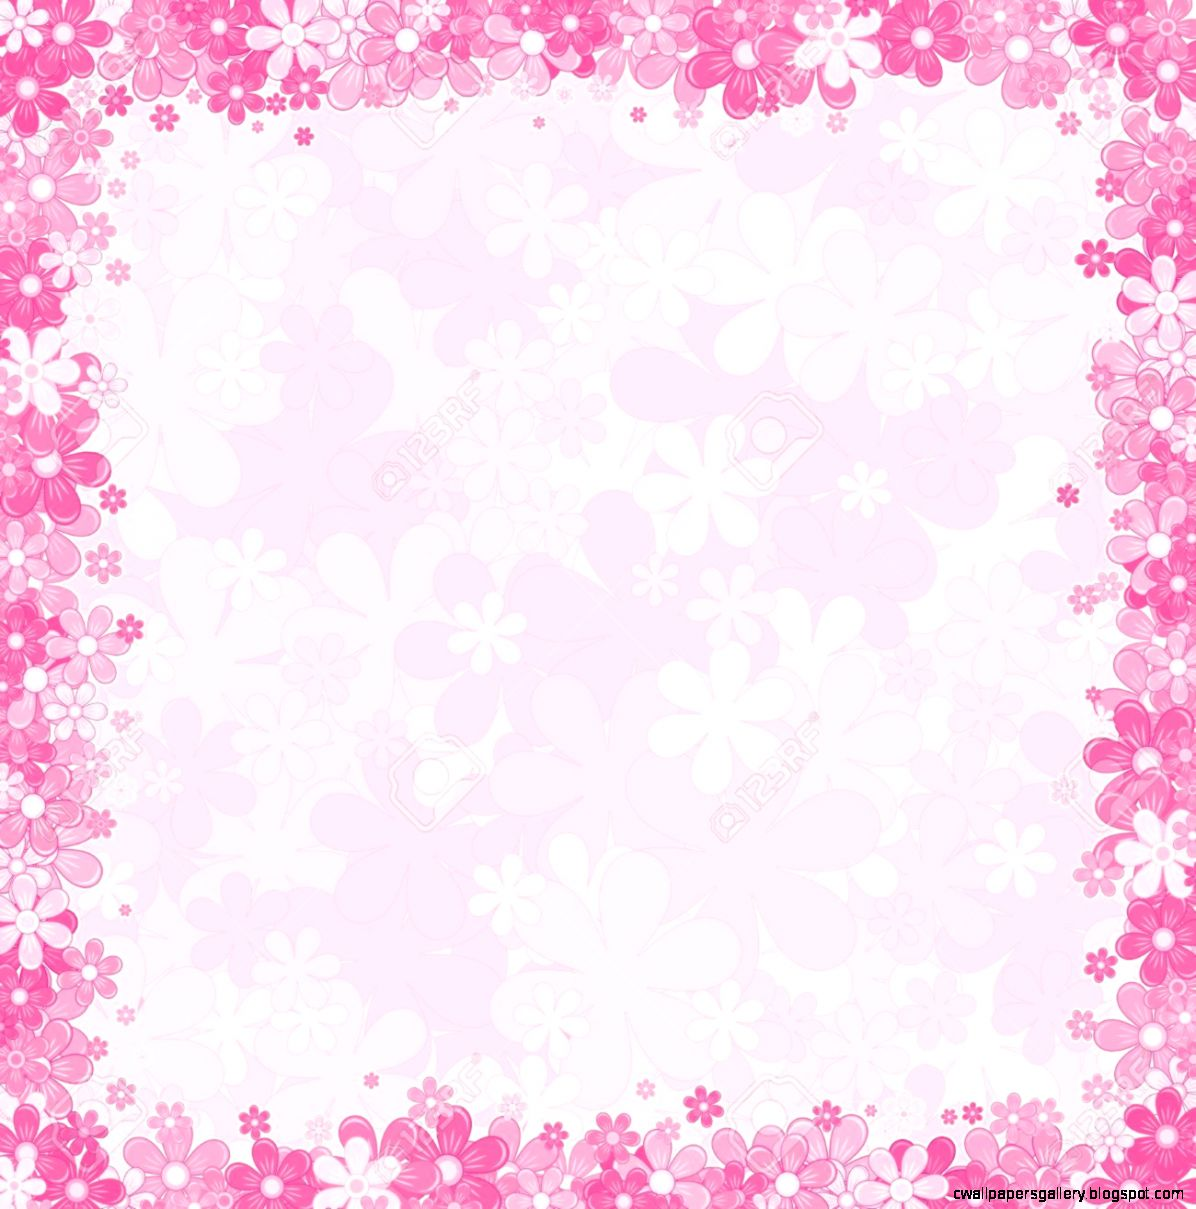 Pink flower background designs wallpapers gallery view original size mightylinksfo Choice Image